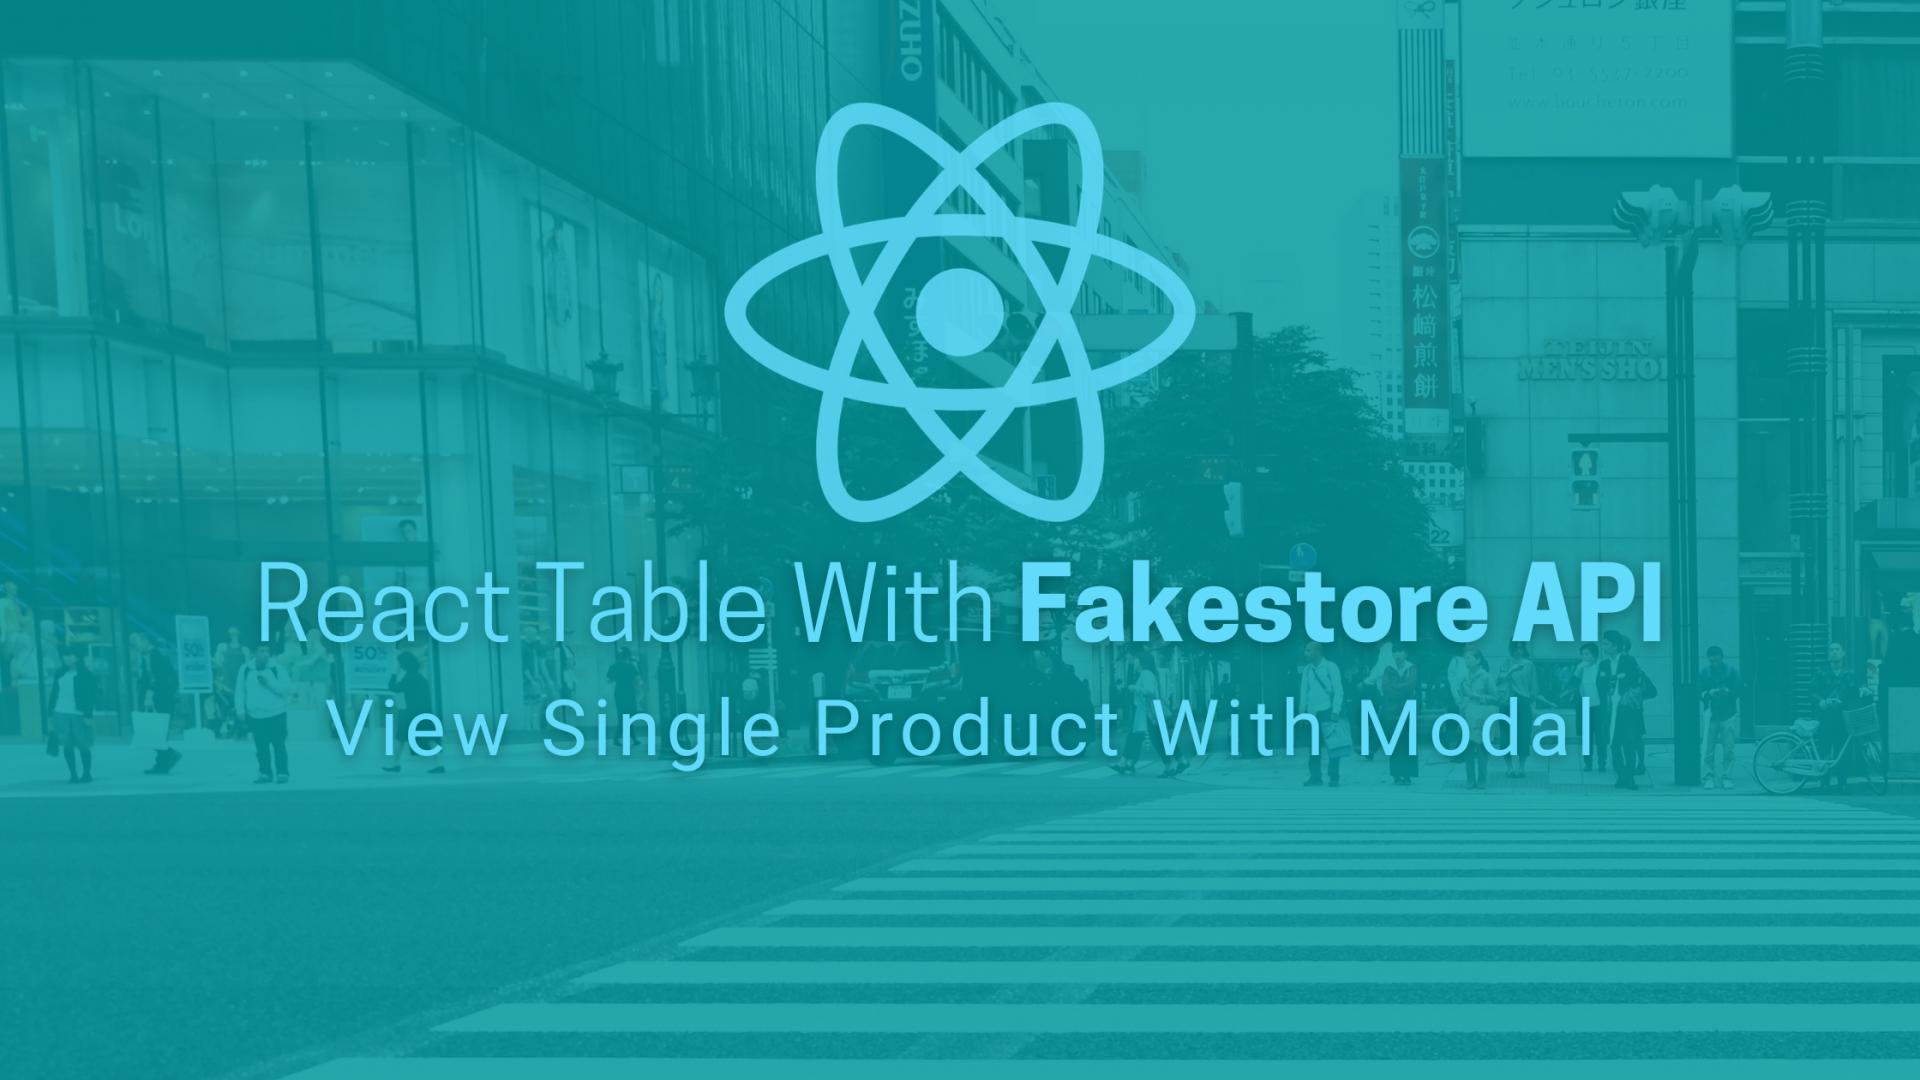 Getting Started With React Table With Fakestore API #5 : View Single Product With Modal